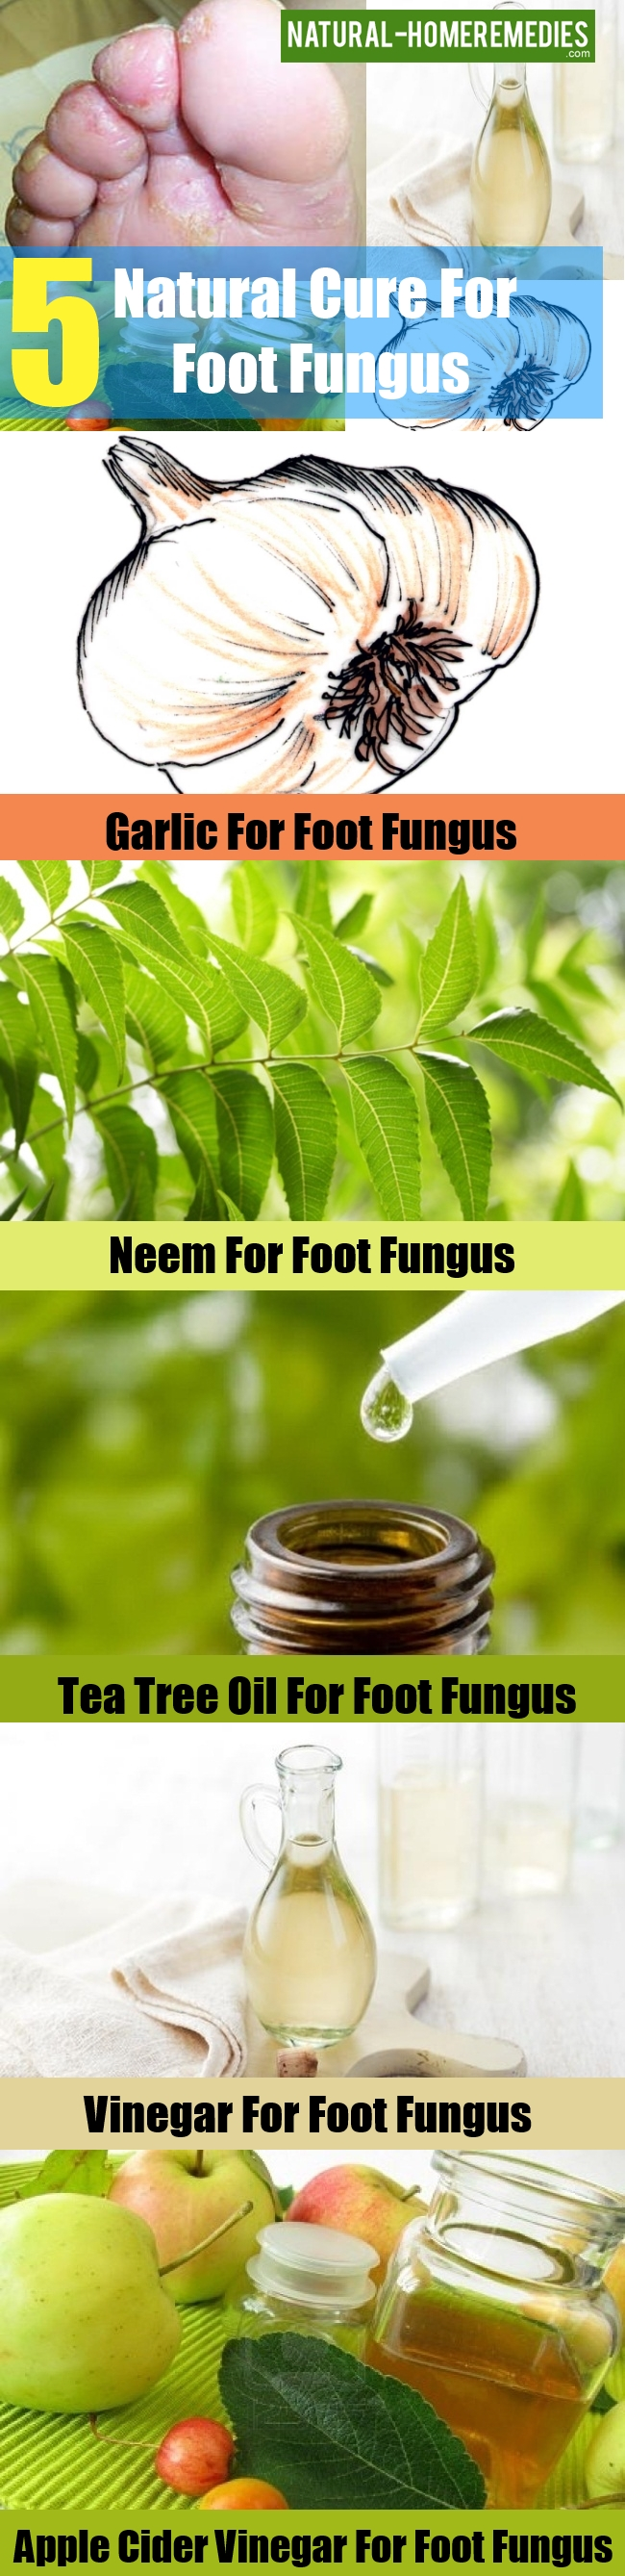 Natural Cure For Foot Fungus